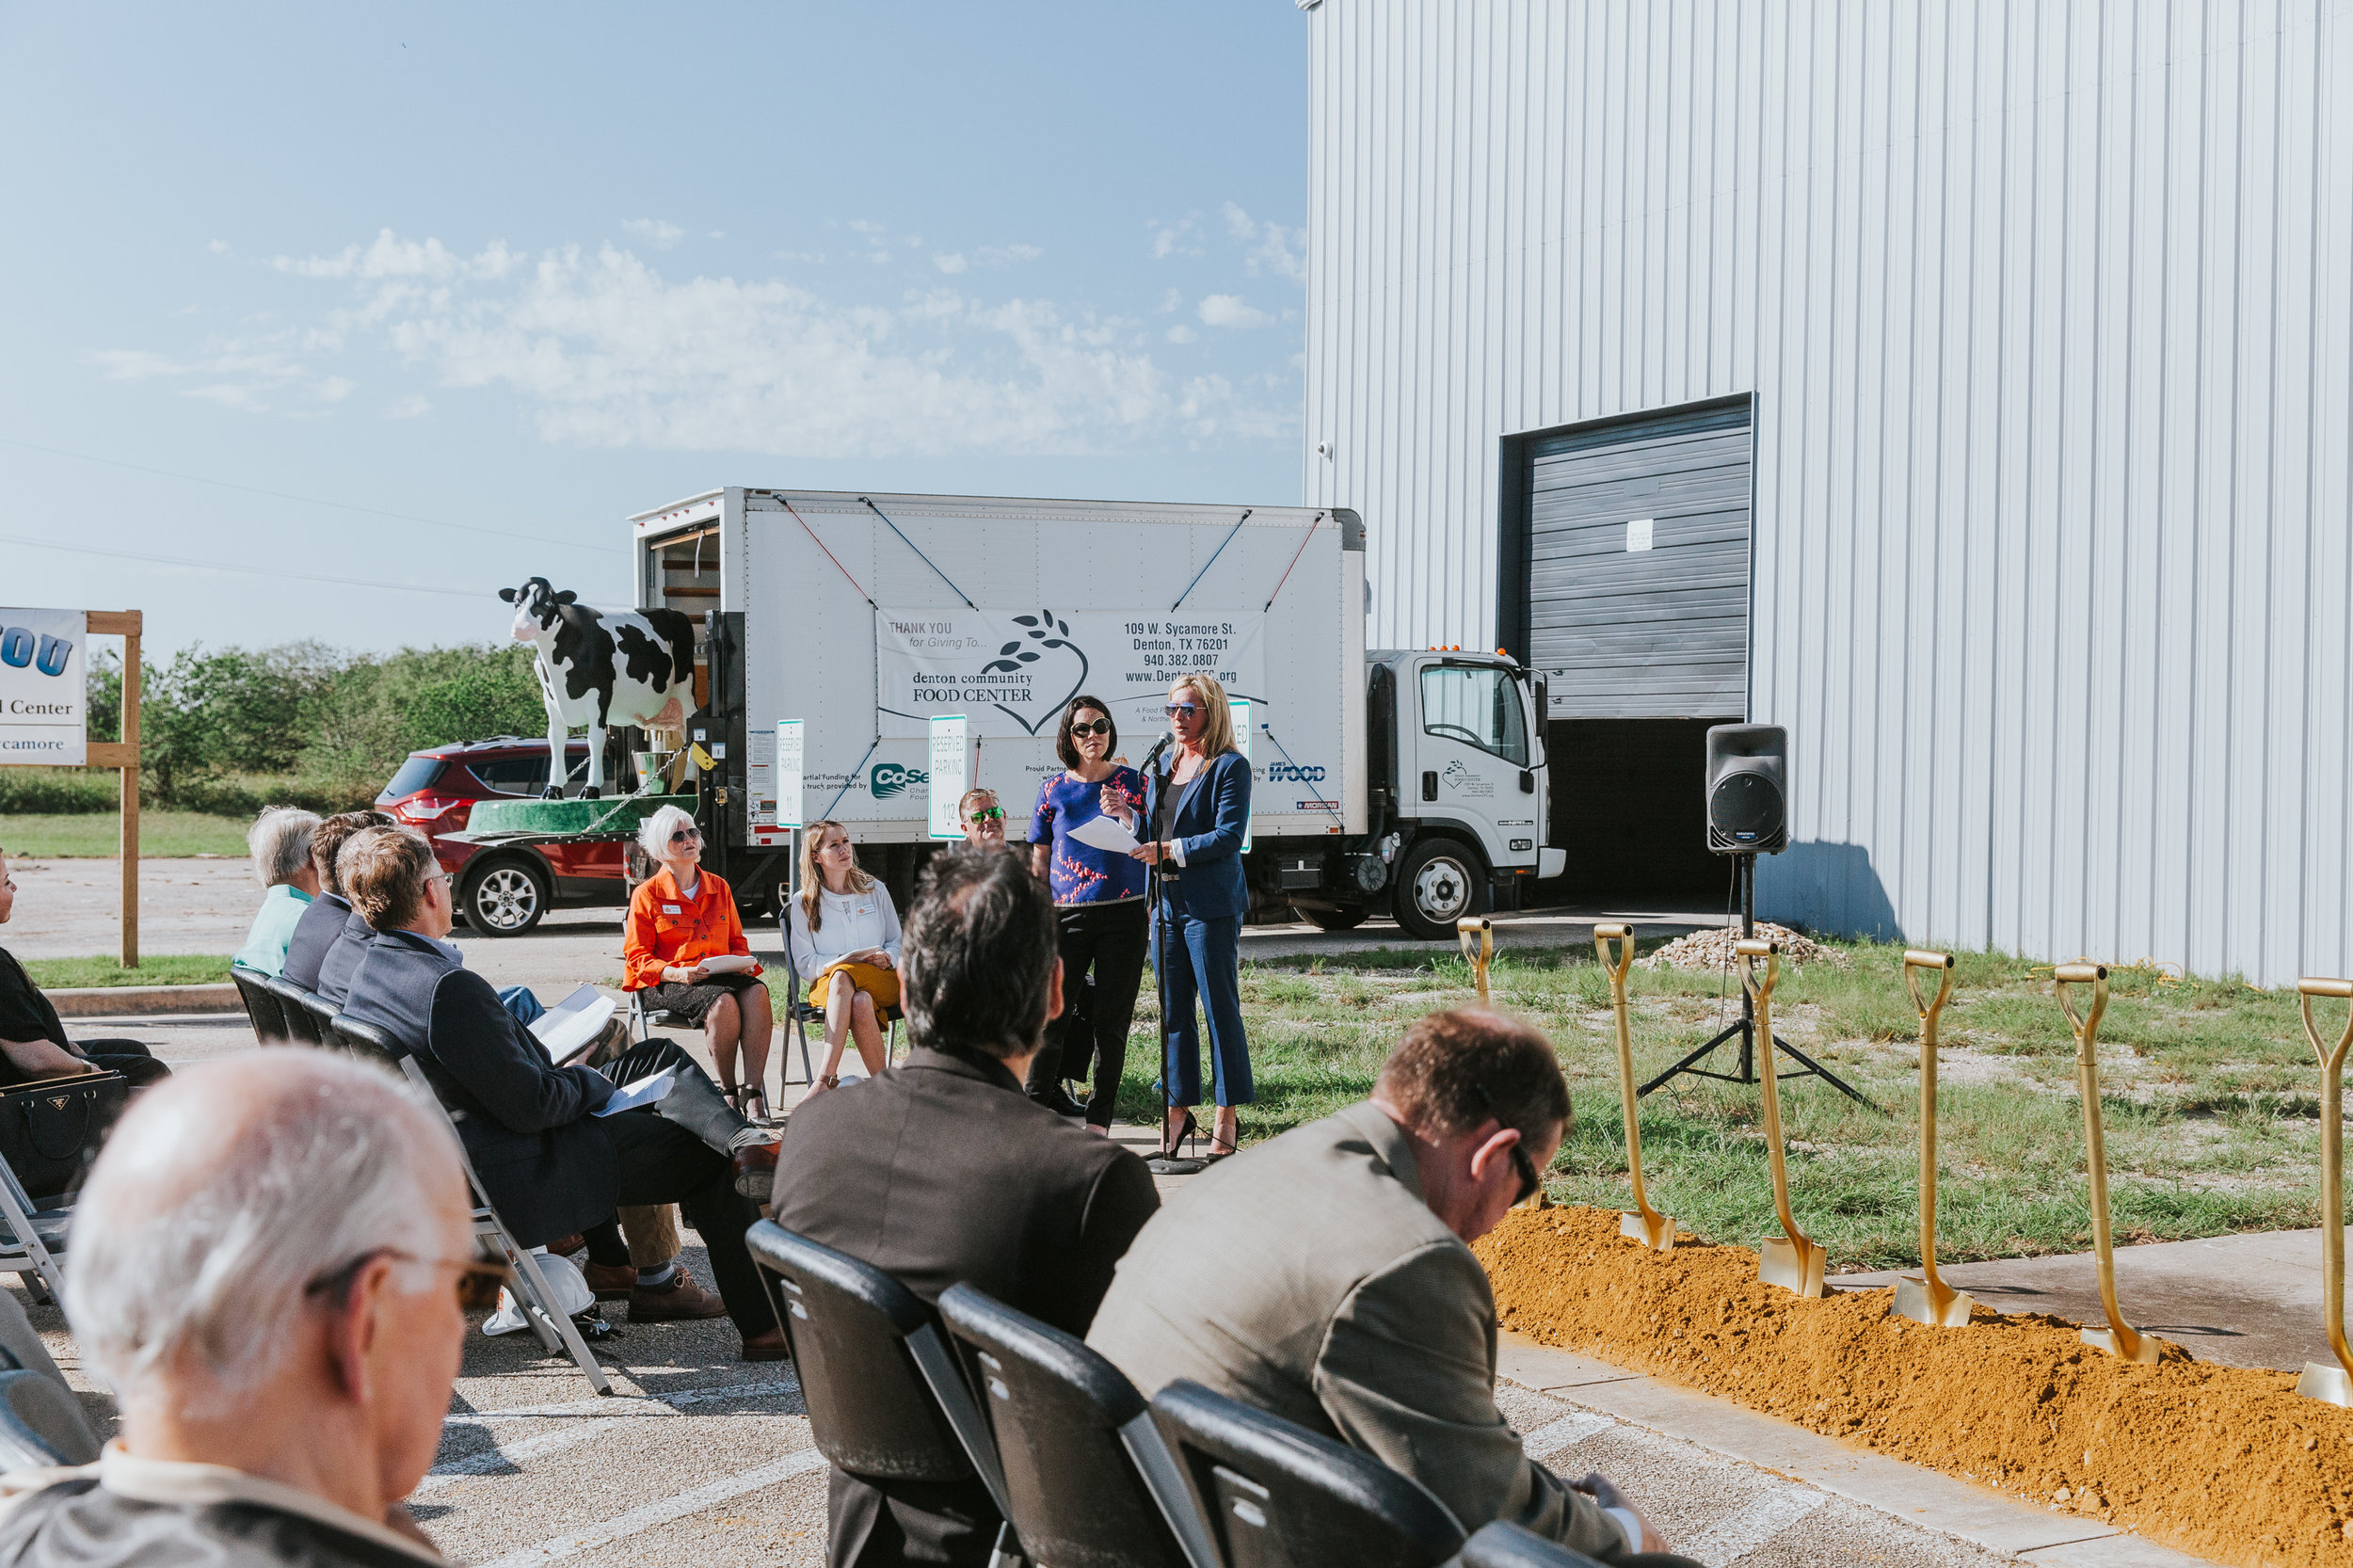 (Left to right) Selwyn Rayzor with J Newton Rayzor Foundation and Children's Advocacy Center for Denton County CEO Kristen Howell speaking at the Groundbreaking Ceremony.